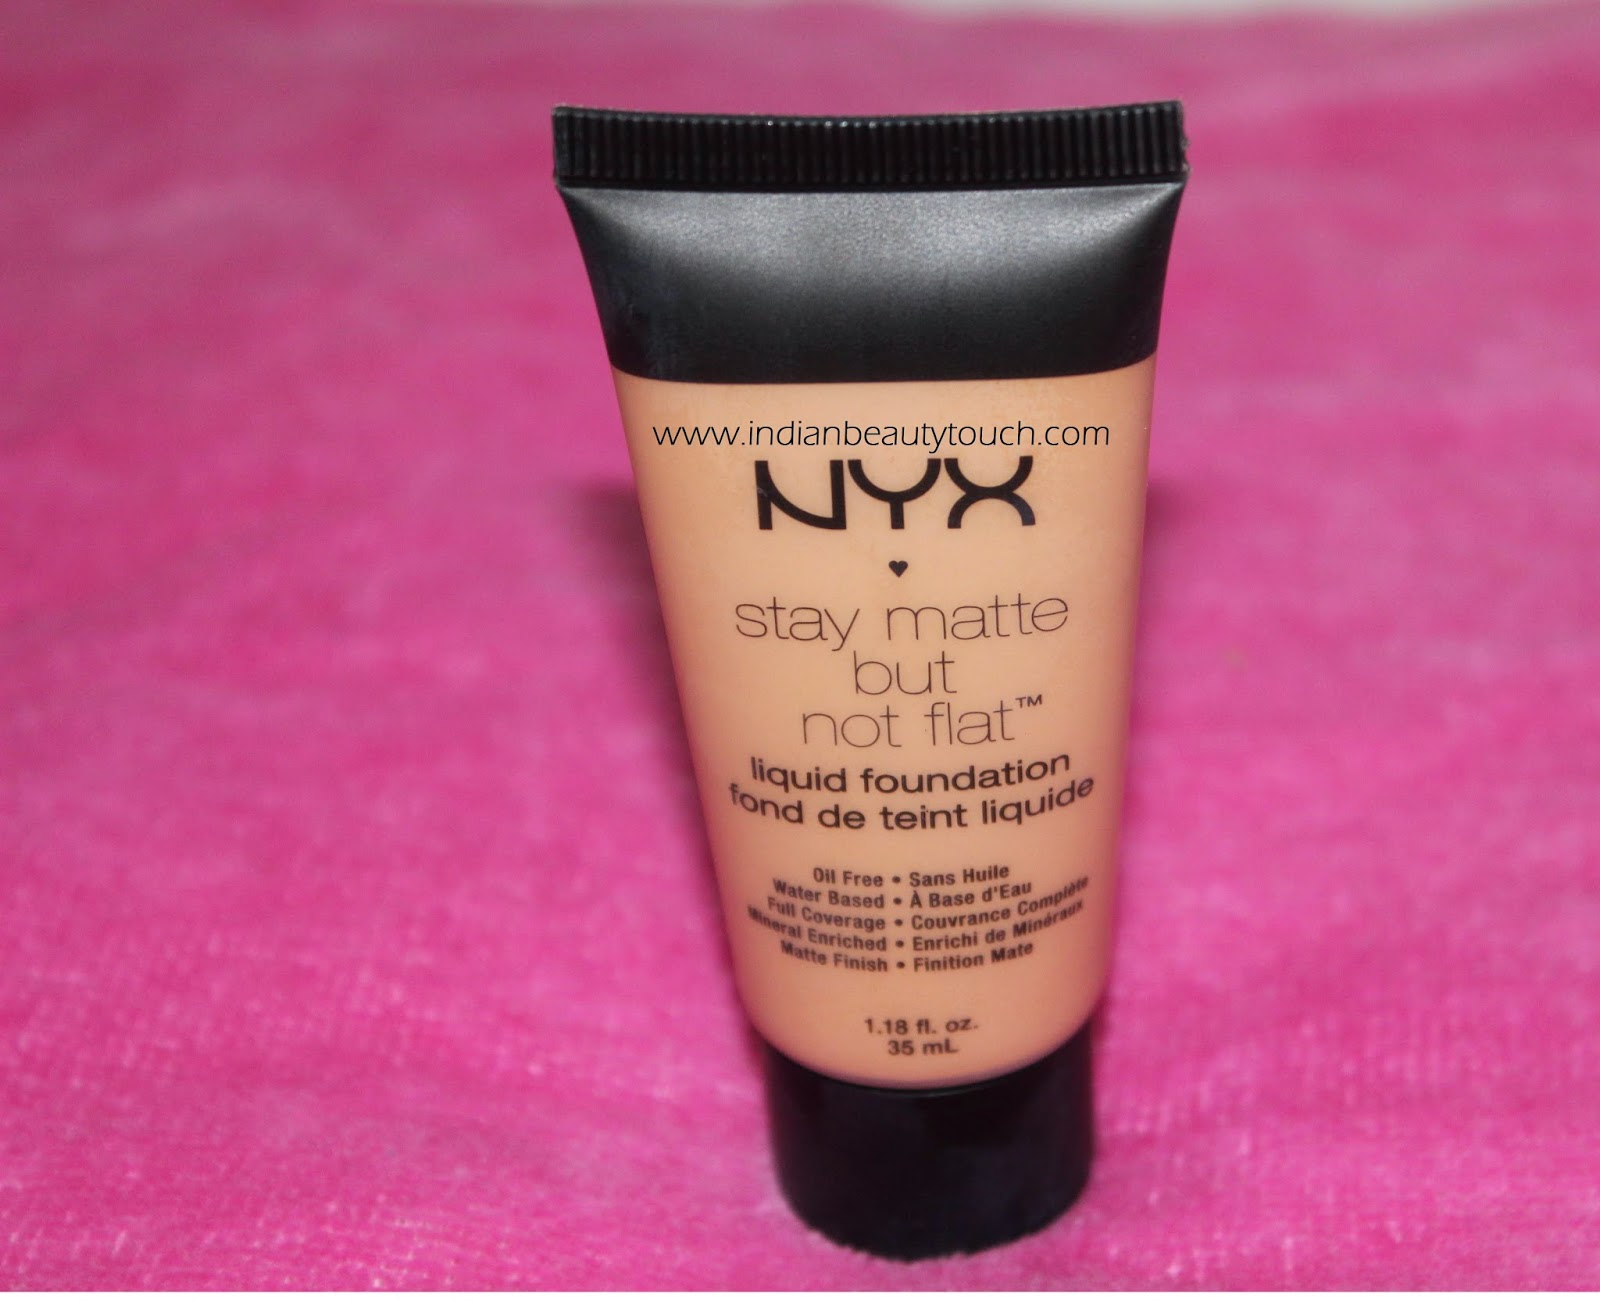 NYX Stay Matte but Not Flat Foundation Review, nyx foundation , nyx india , nyx foundation review , nyx cosmetics , NYX Stay Matte but Not Flat Foundation Review in India